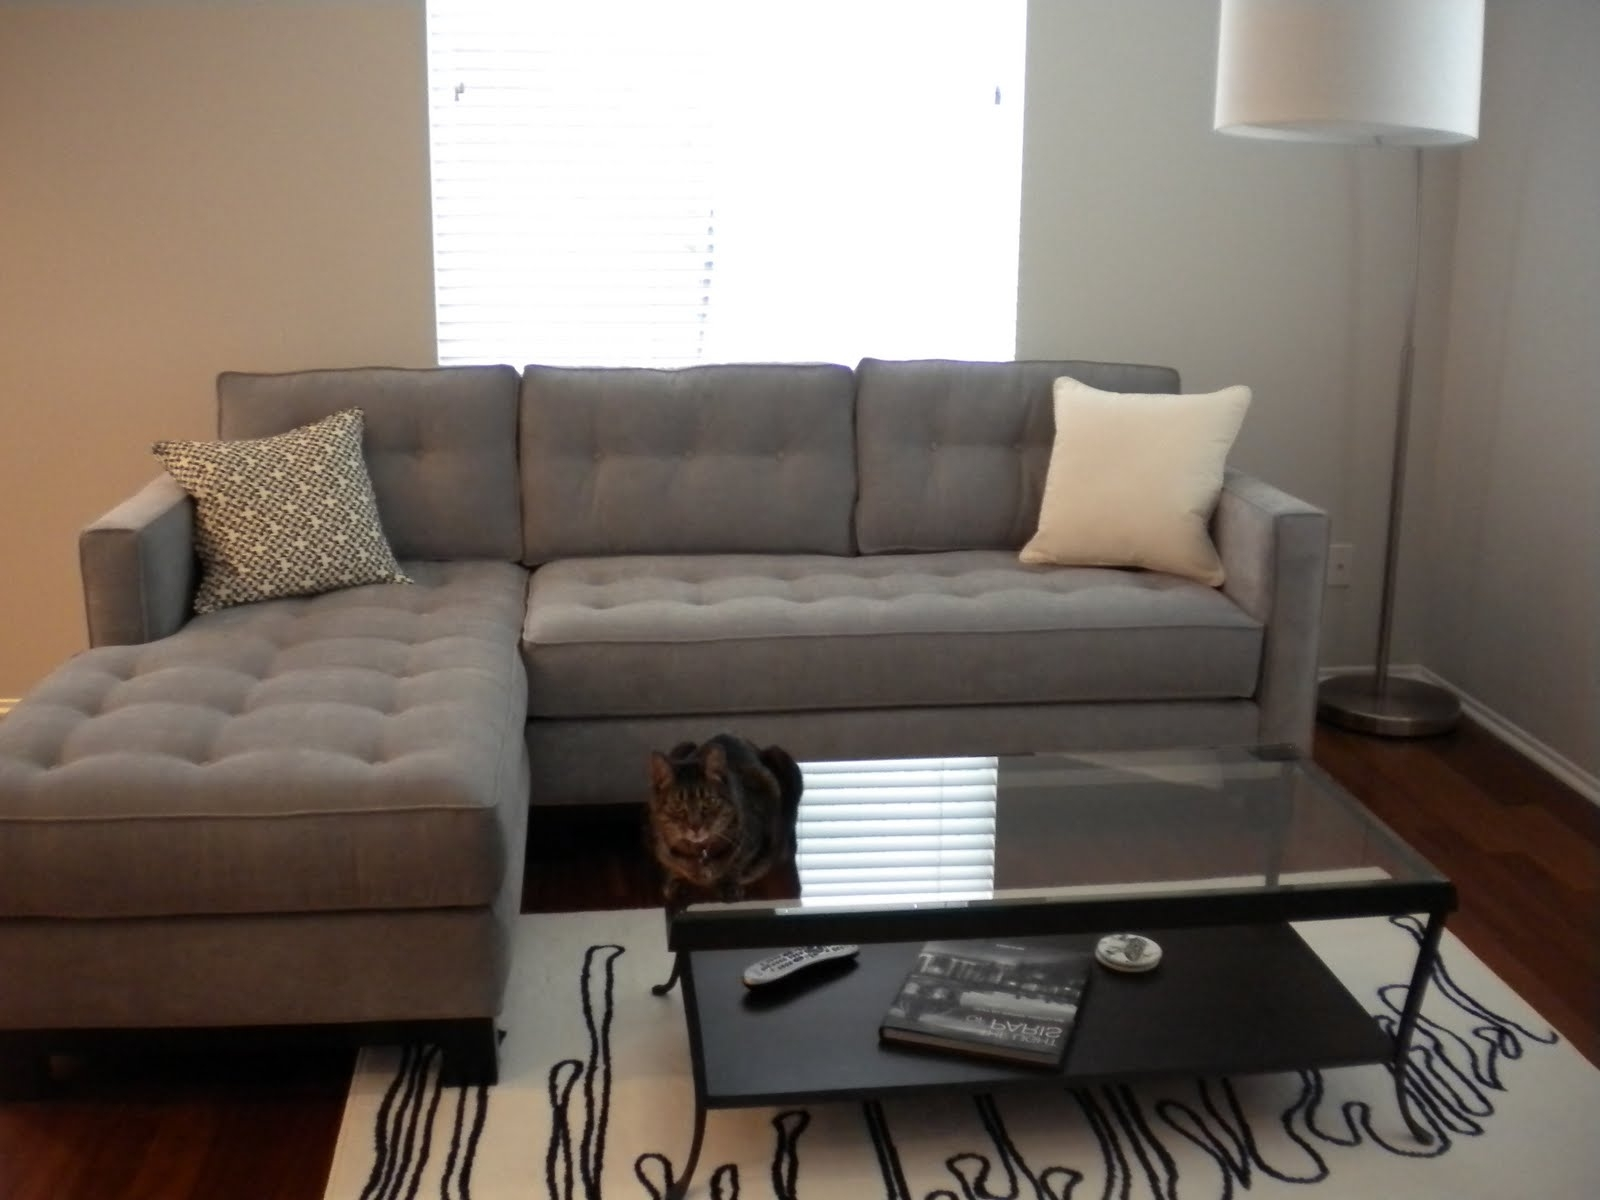 Greenville Nc Sectional Sofas In Most Recent Furniture : Couchtuner X 8 Week Couch To 5K Training Plan Sofa (View 5 of 15)